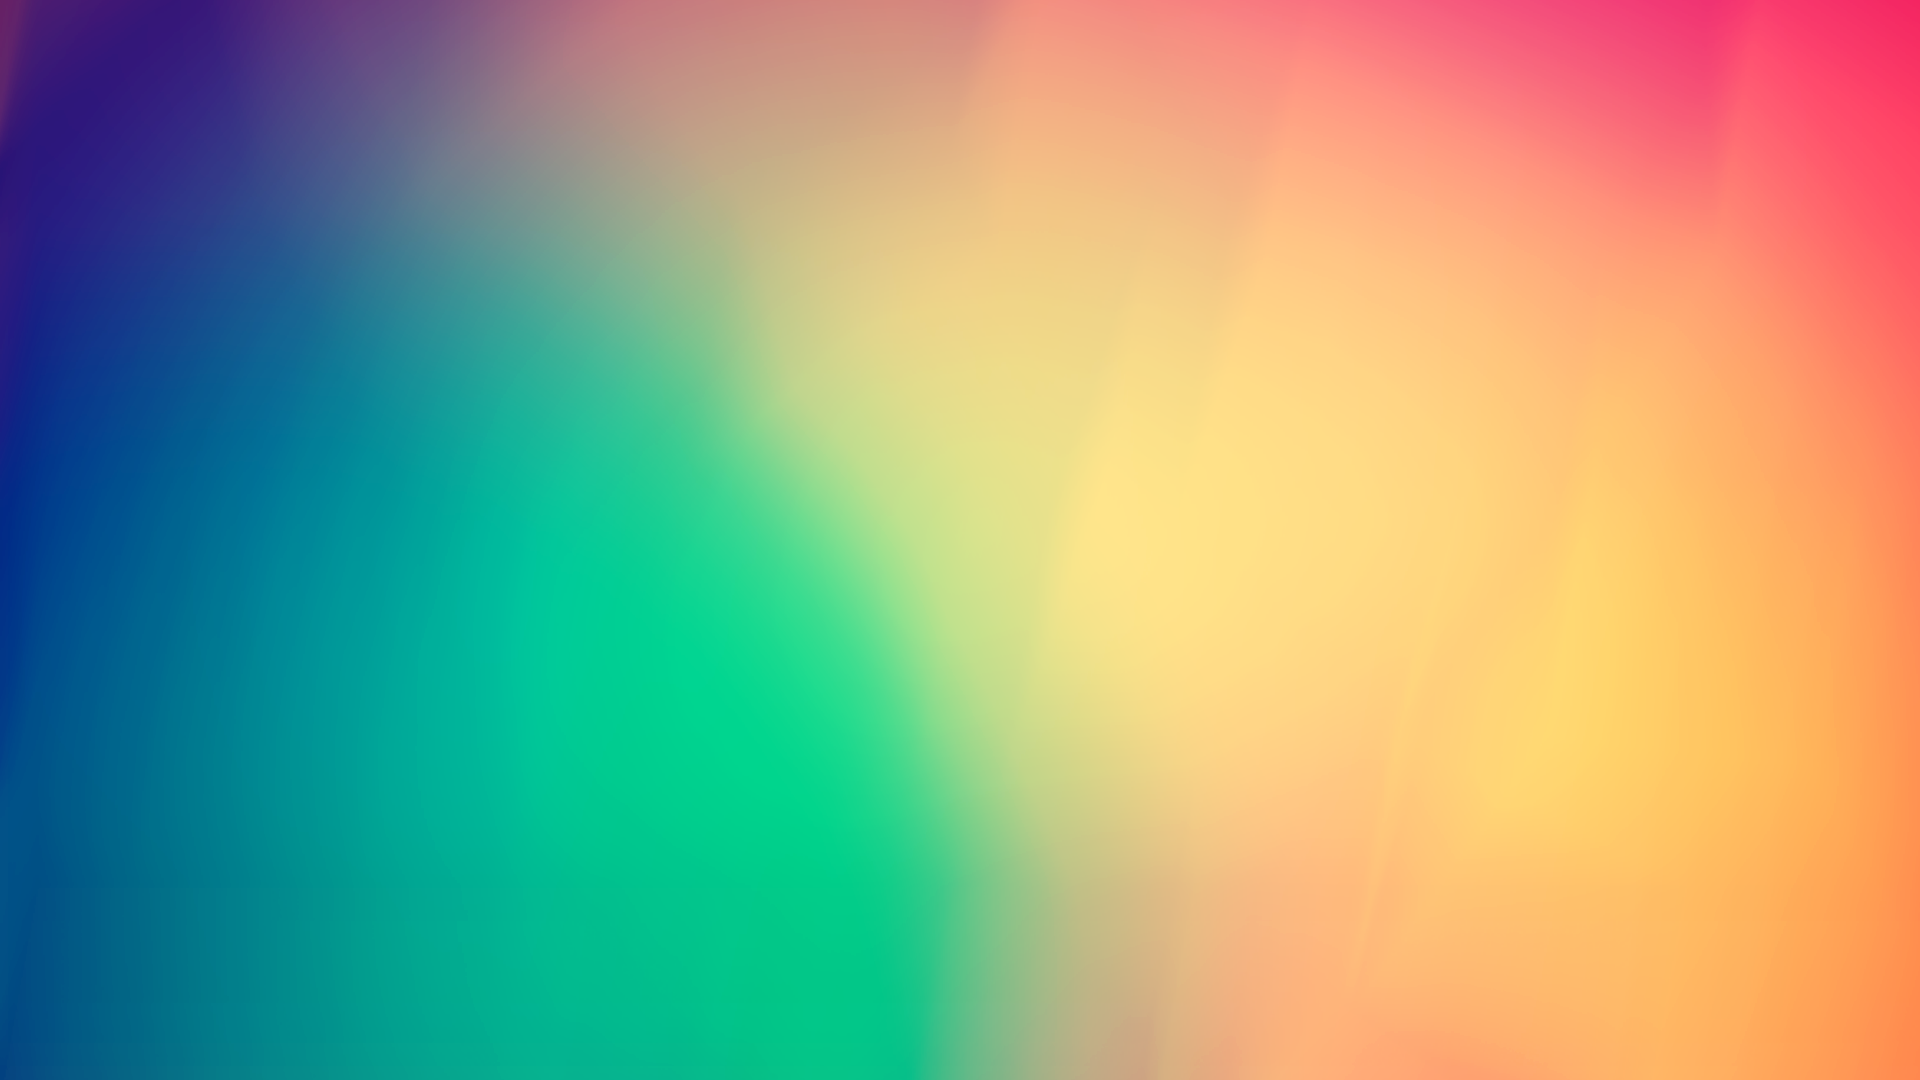 colorful blur wallpaper 26351